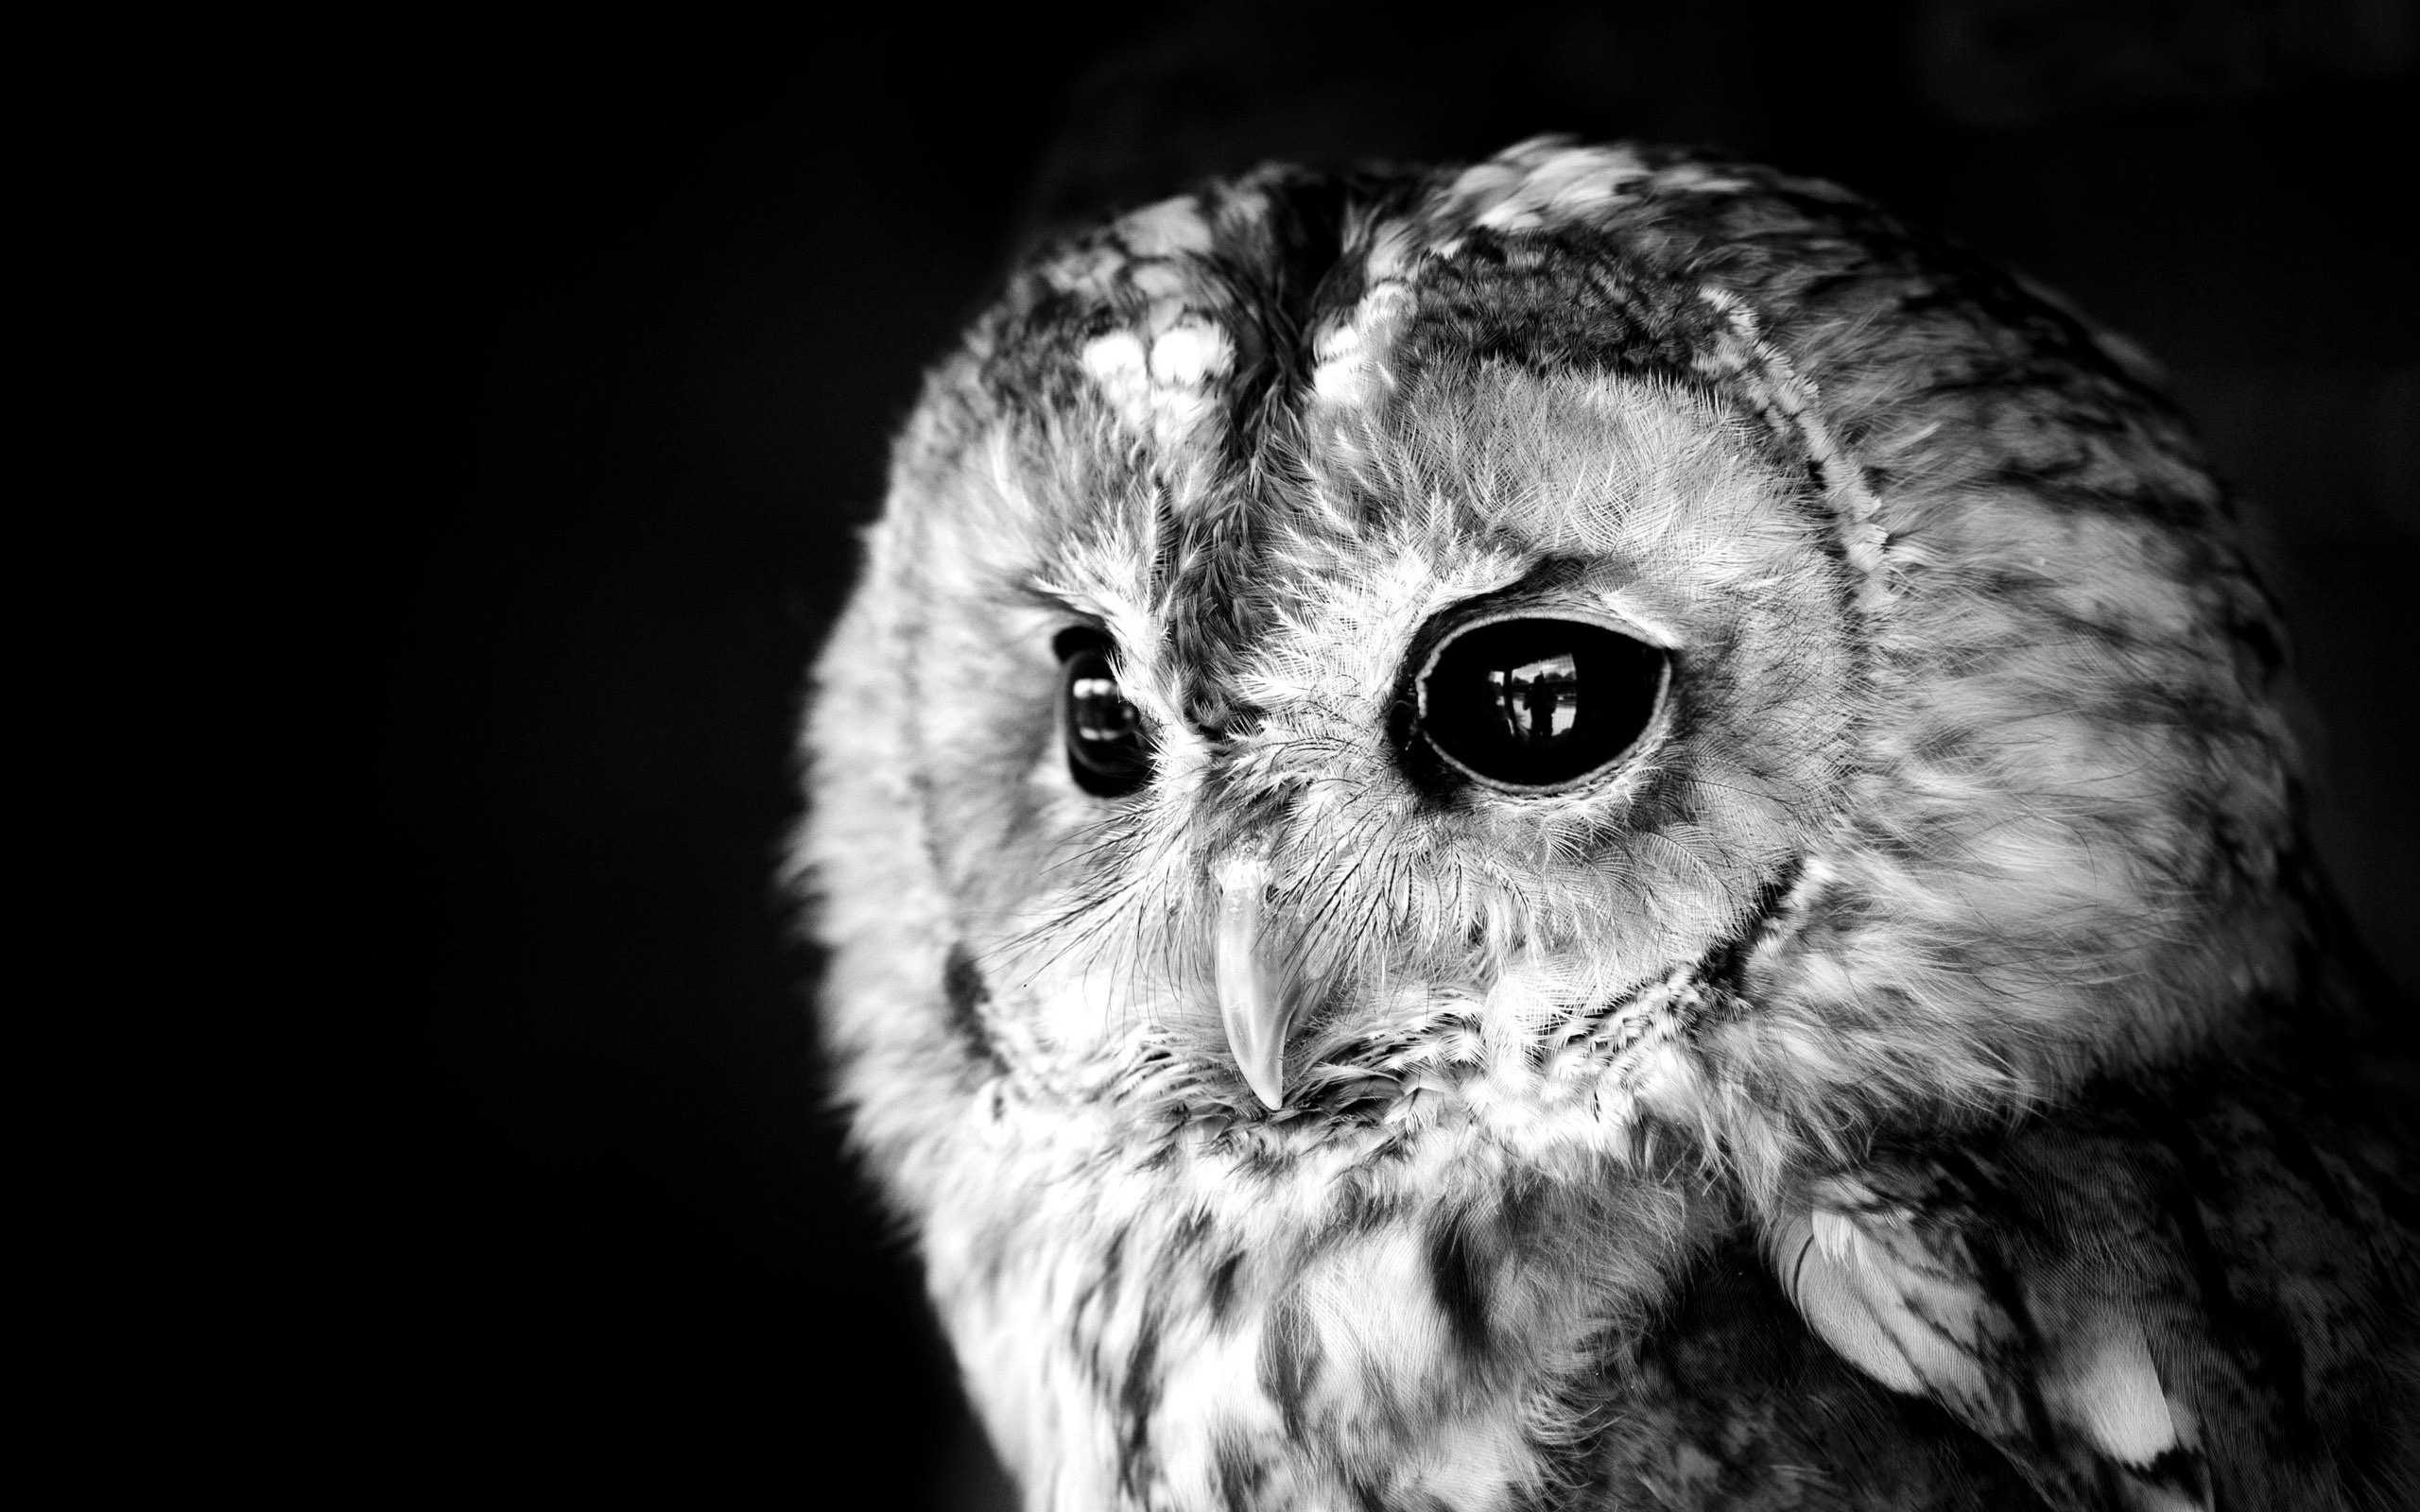 hd-owl-wallpapers-backgrounds-download | wallpaper.wiki